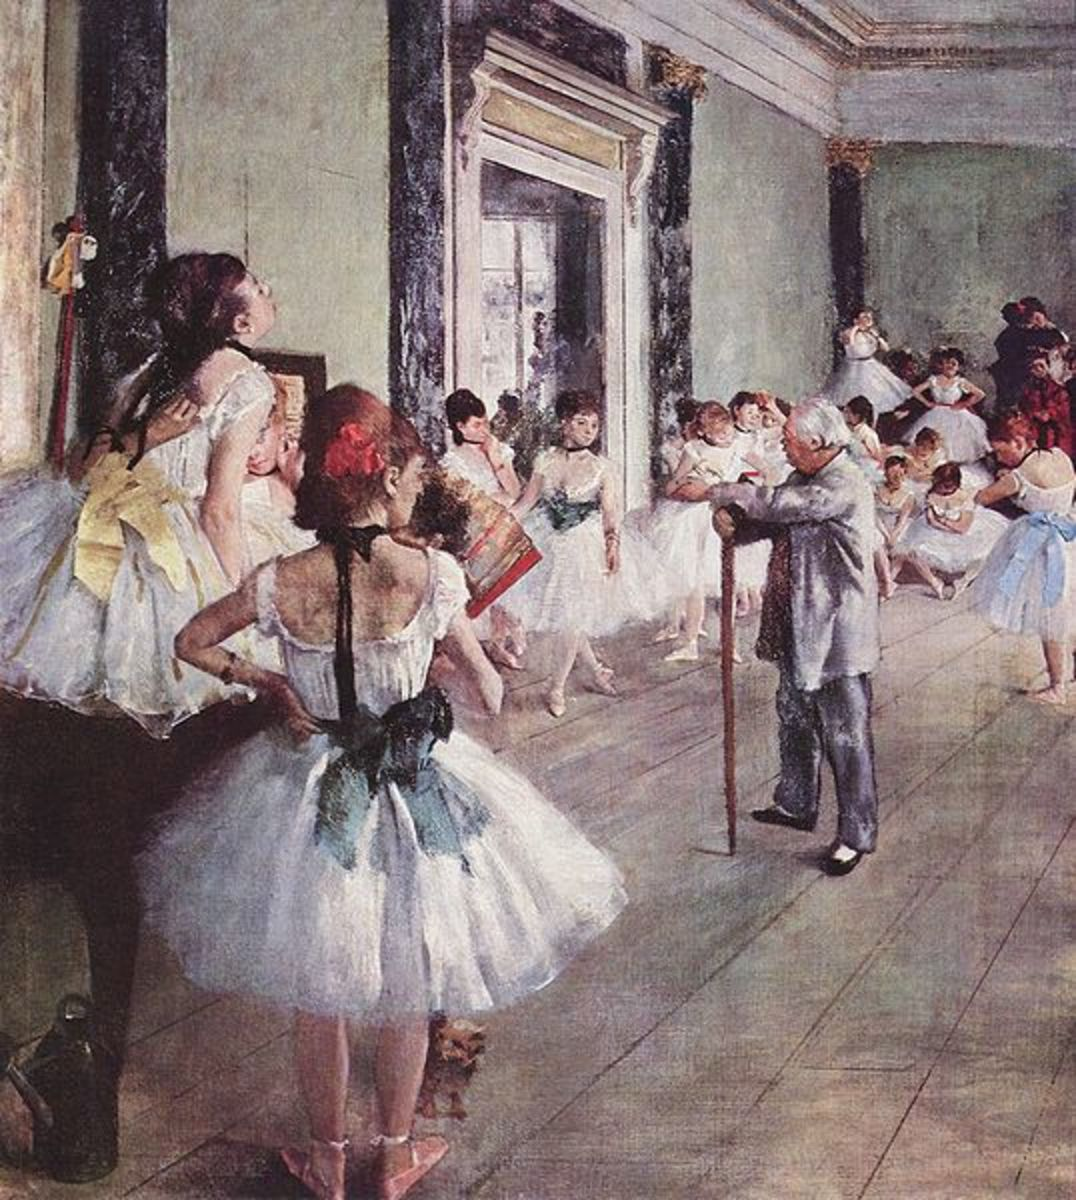 The Dance Class by Edgar Degas, 1875. This Oil on Canvas hangs in the Musee D'Orsay in Paris. Image courtesy of Wiki Commons